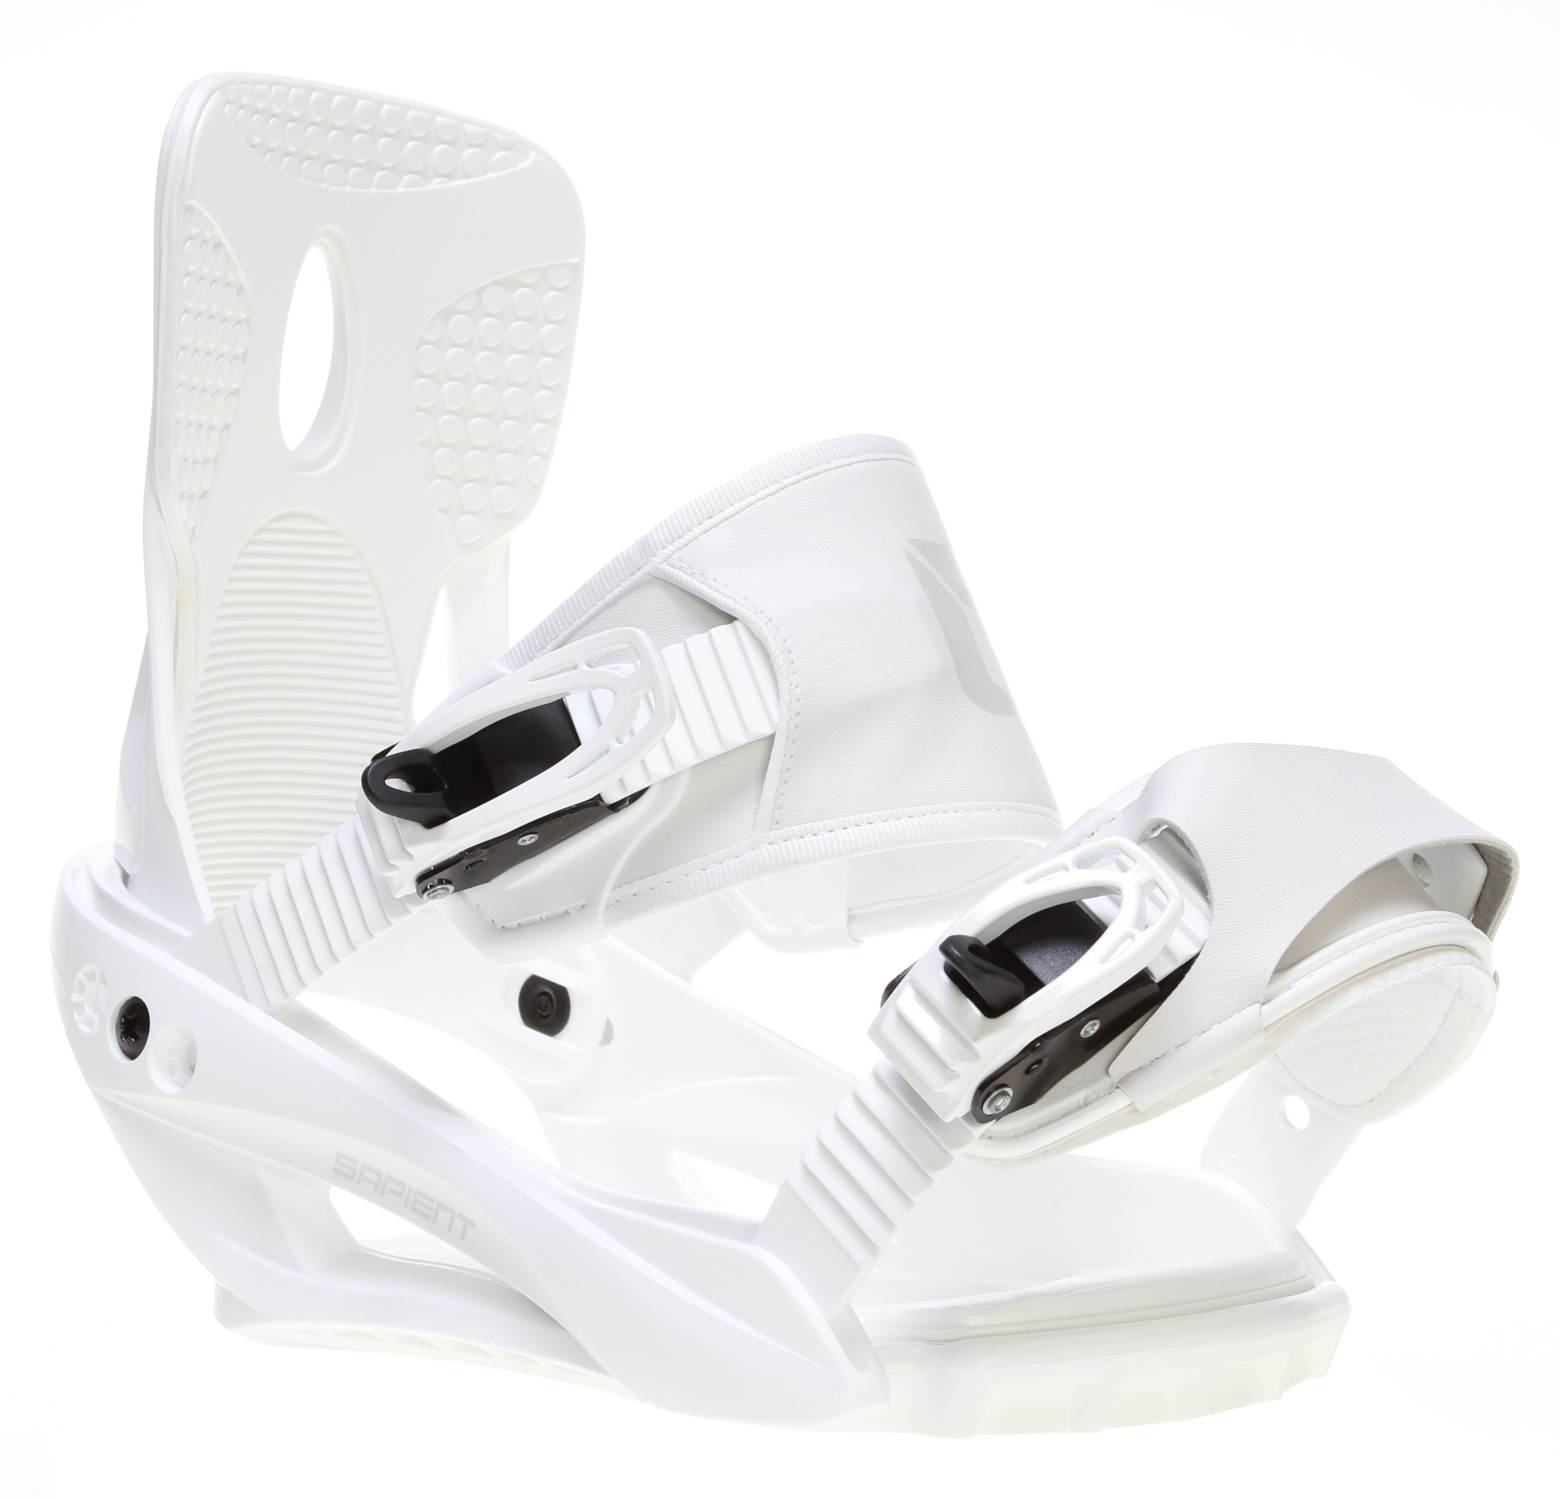 Snowboard These bindings were made for stomping and that is just what they will do! This strap contraption features a fiberglass reinforced plastic baseplate, lightweight cored highback, and comfortable sewn straps. With a heavily padded footbed, metal ratchets and quick adjust hardware these pups are ready to shred the slopes but not your wallet. Finally, they only come in white so they look great on any board.Key Features of the Sapient Zeus Snowboard Bindings:  Fiber reinforced nylon  Cored highback  Metal ratchets  Sewn straps with quick adjust ankle - $71.95